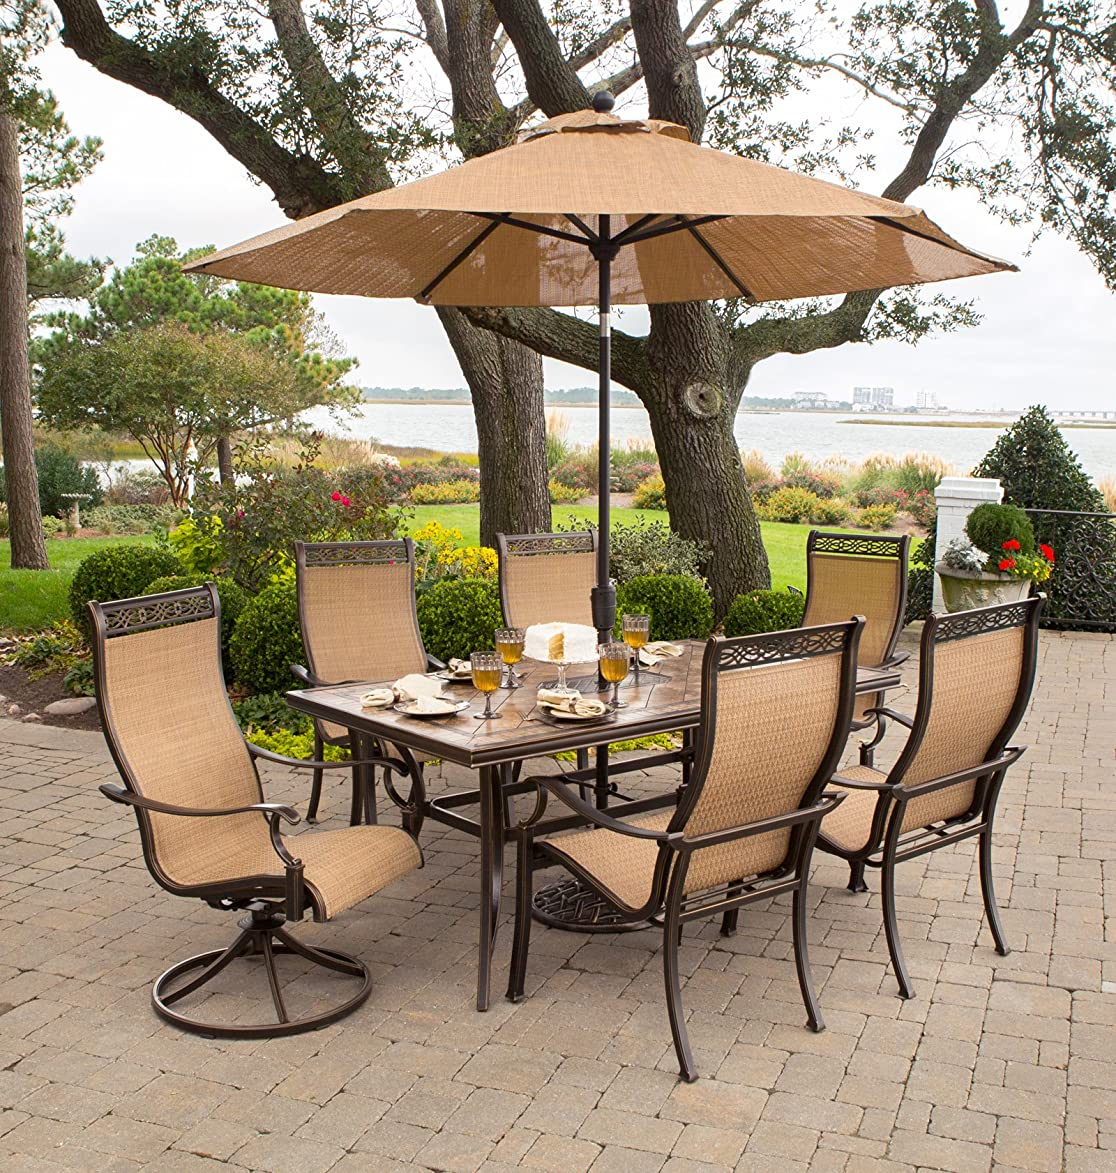 Hanover MONACO7PCSW-SU-P Monaco 7 Pc Two Swivel, Four Chairs, and a 40 x 68 in. Table with Umbrella Outdoor High Back Sling Dining Set, Tan/Bronze